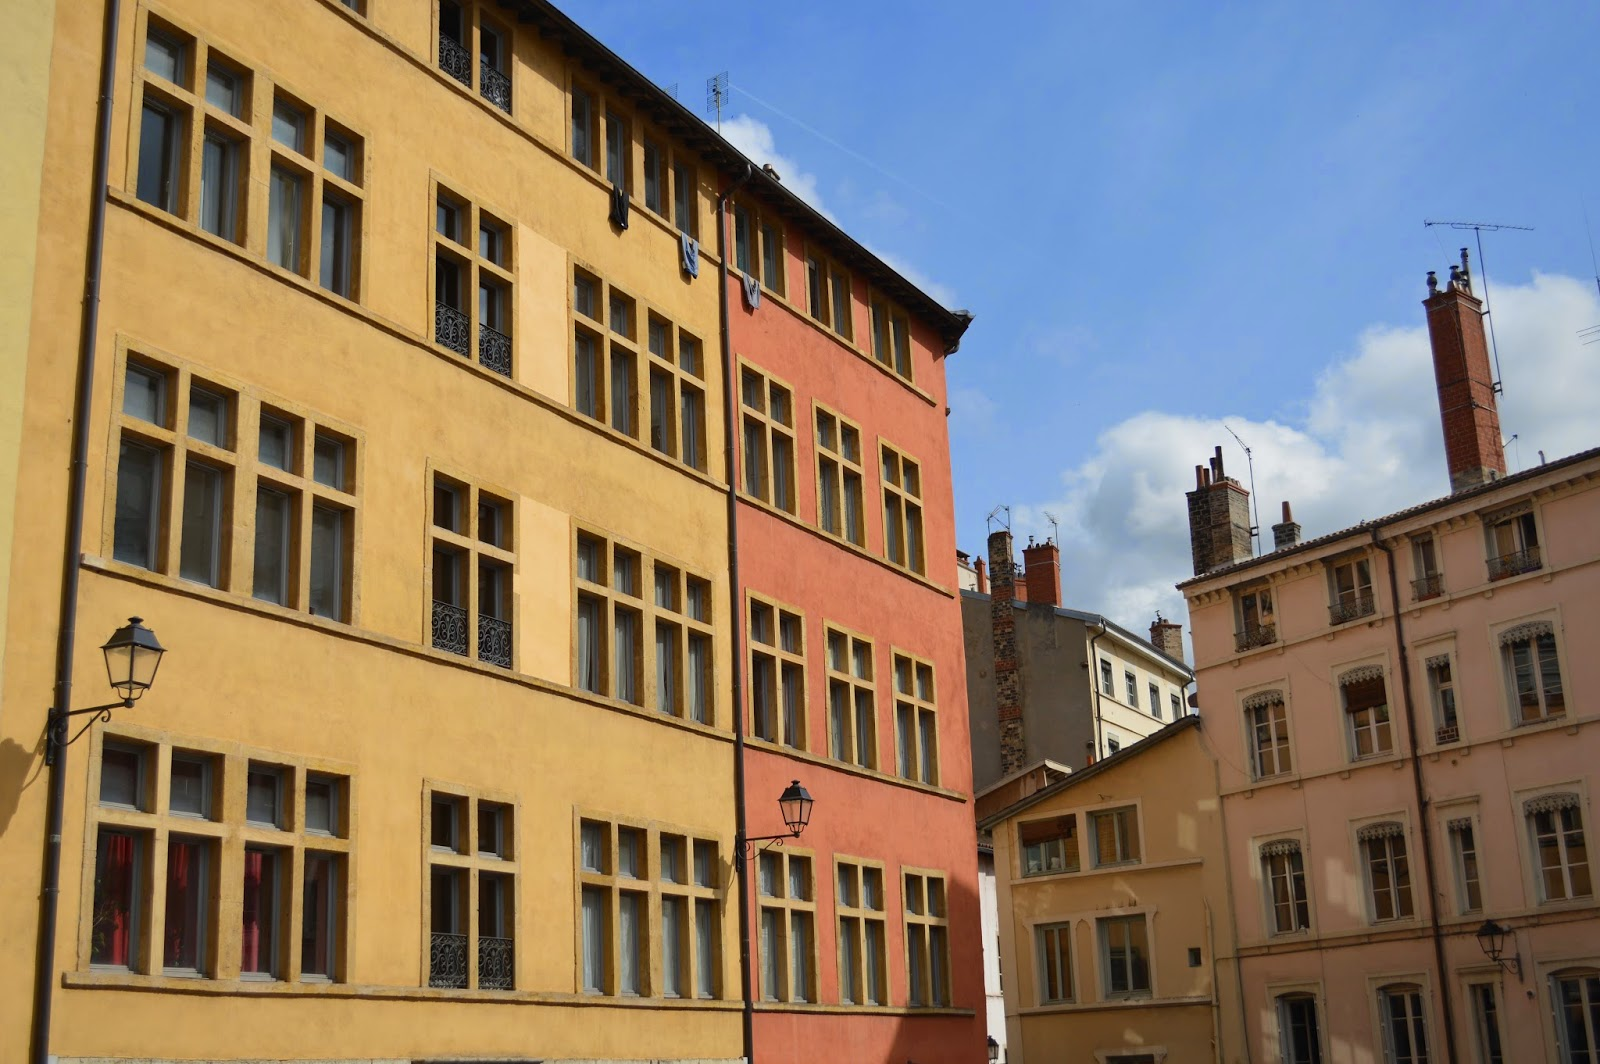 Brightly coloured and pastel buildings in Lyon